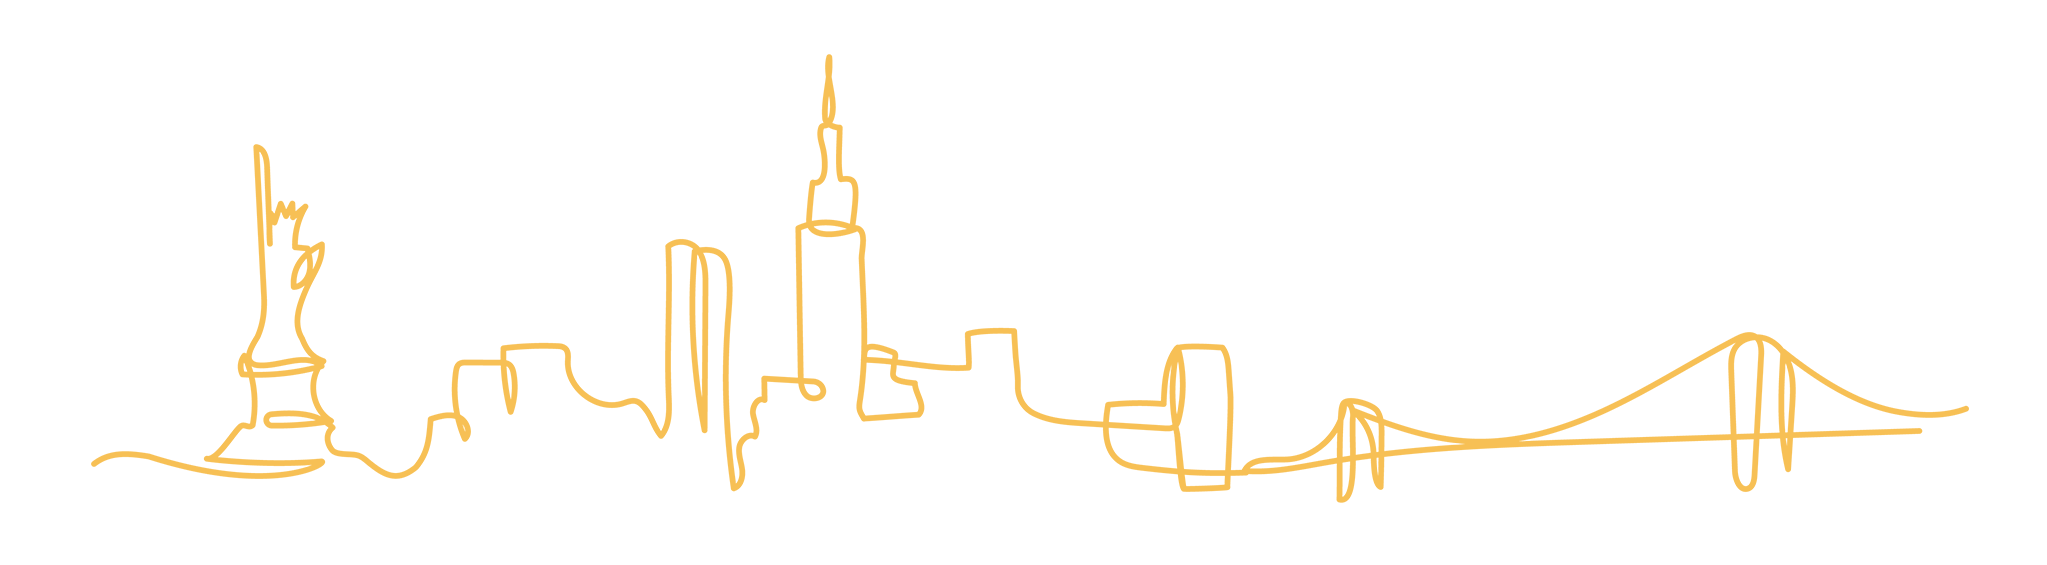 Illustration of the NYC Skyline